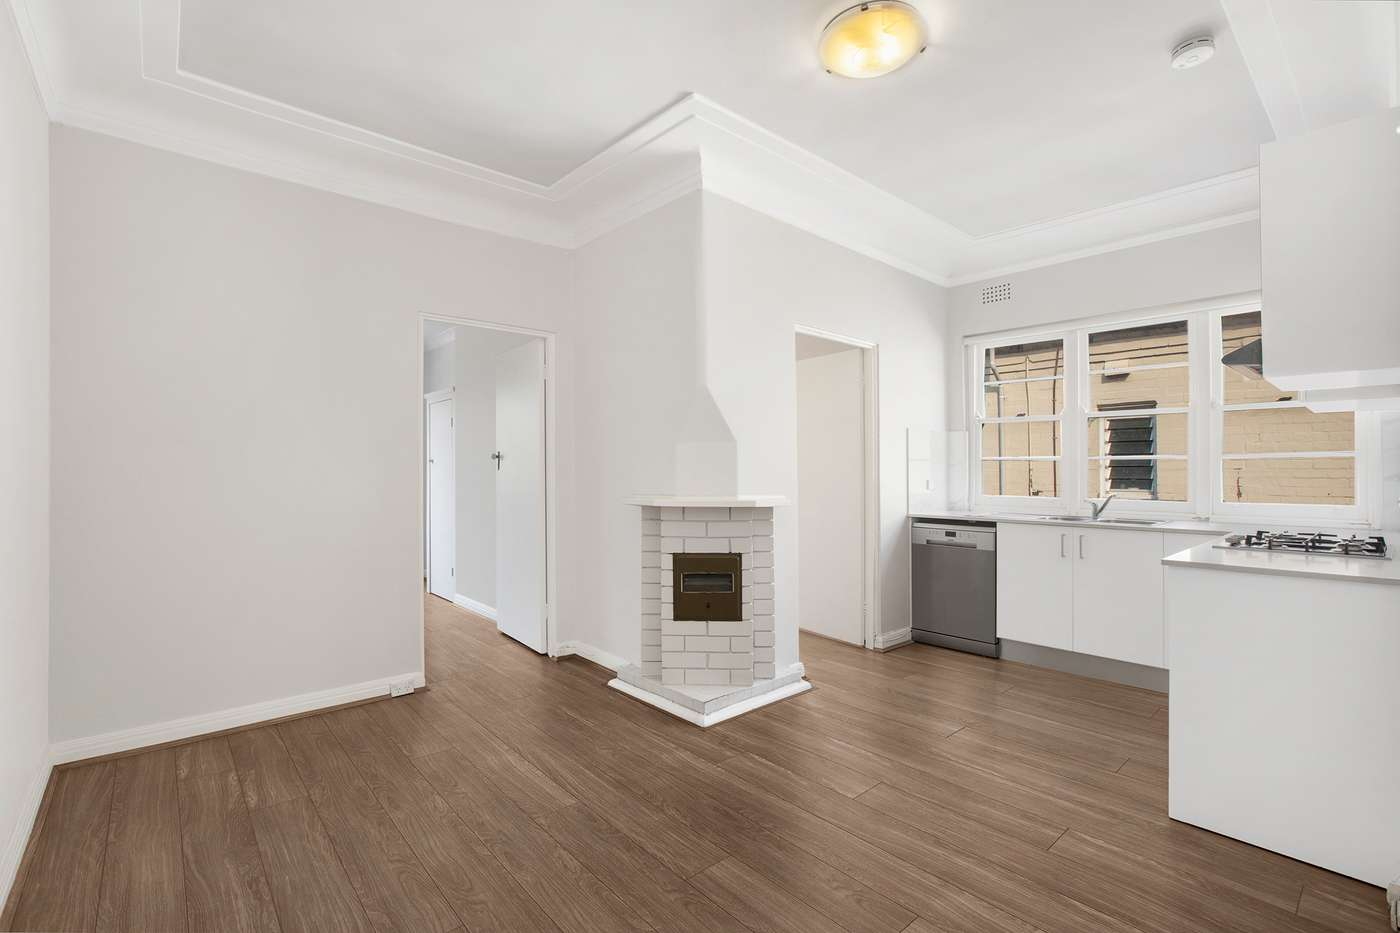 Main view of Homely apartment listing, 6/191 Clovelly Road, Randwick, NSW 2031